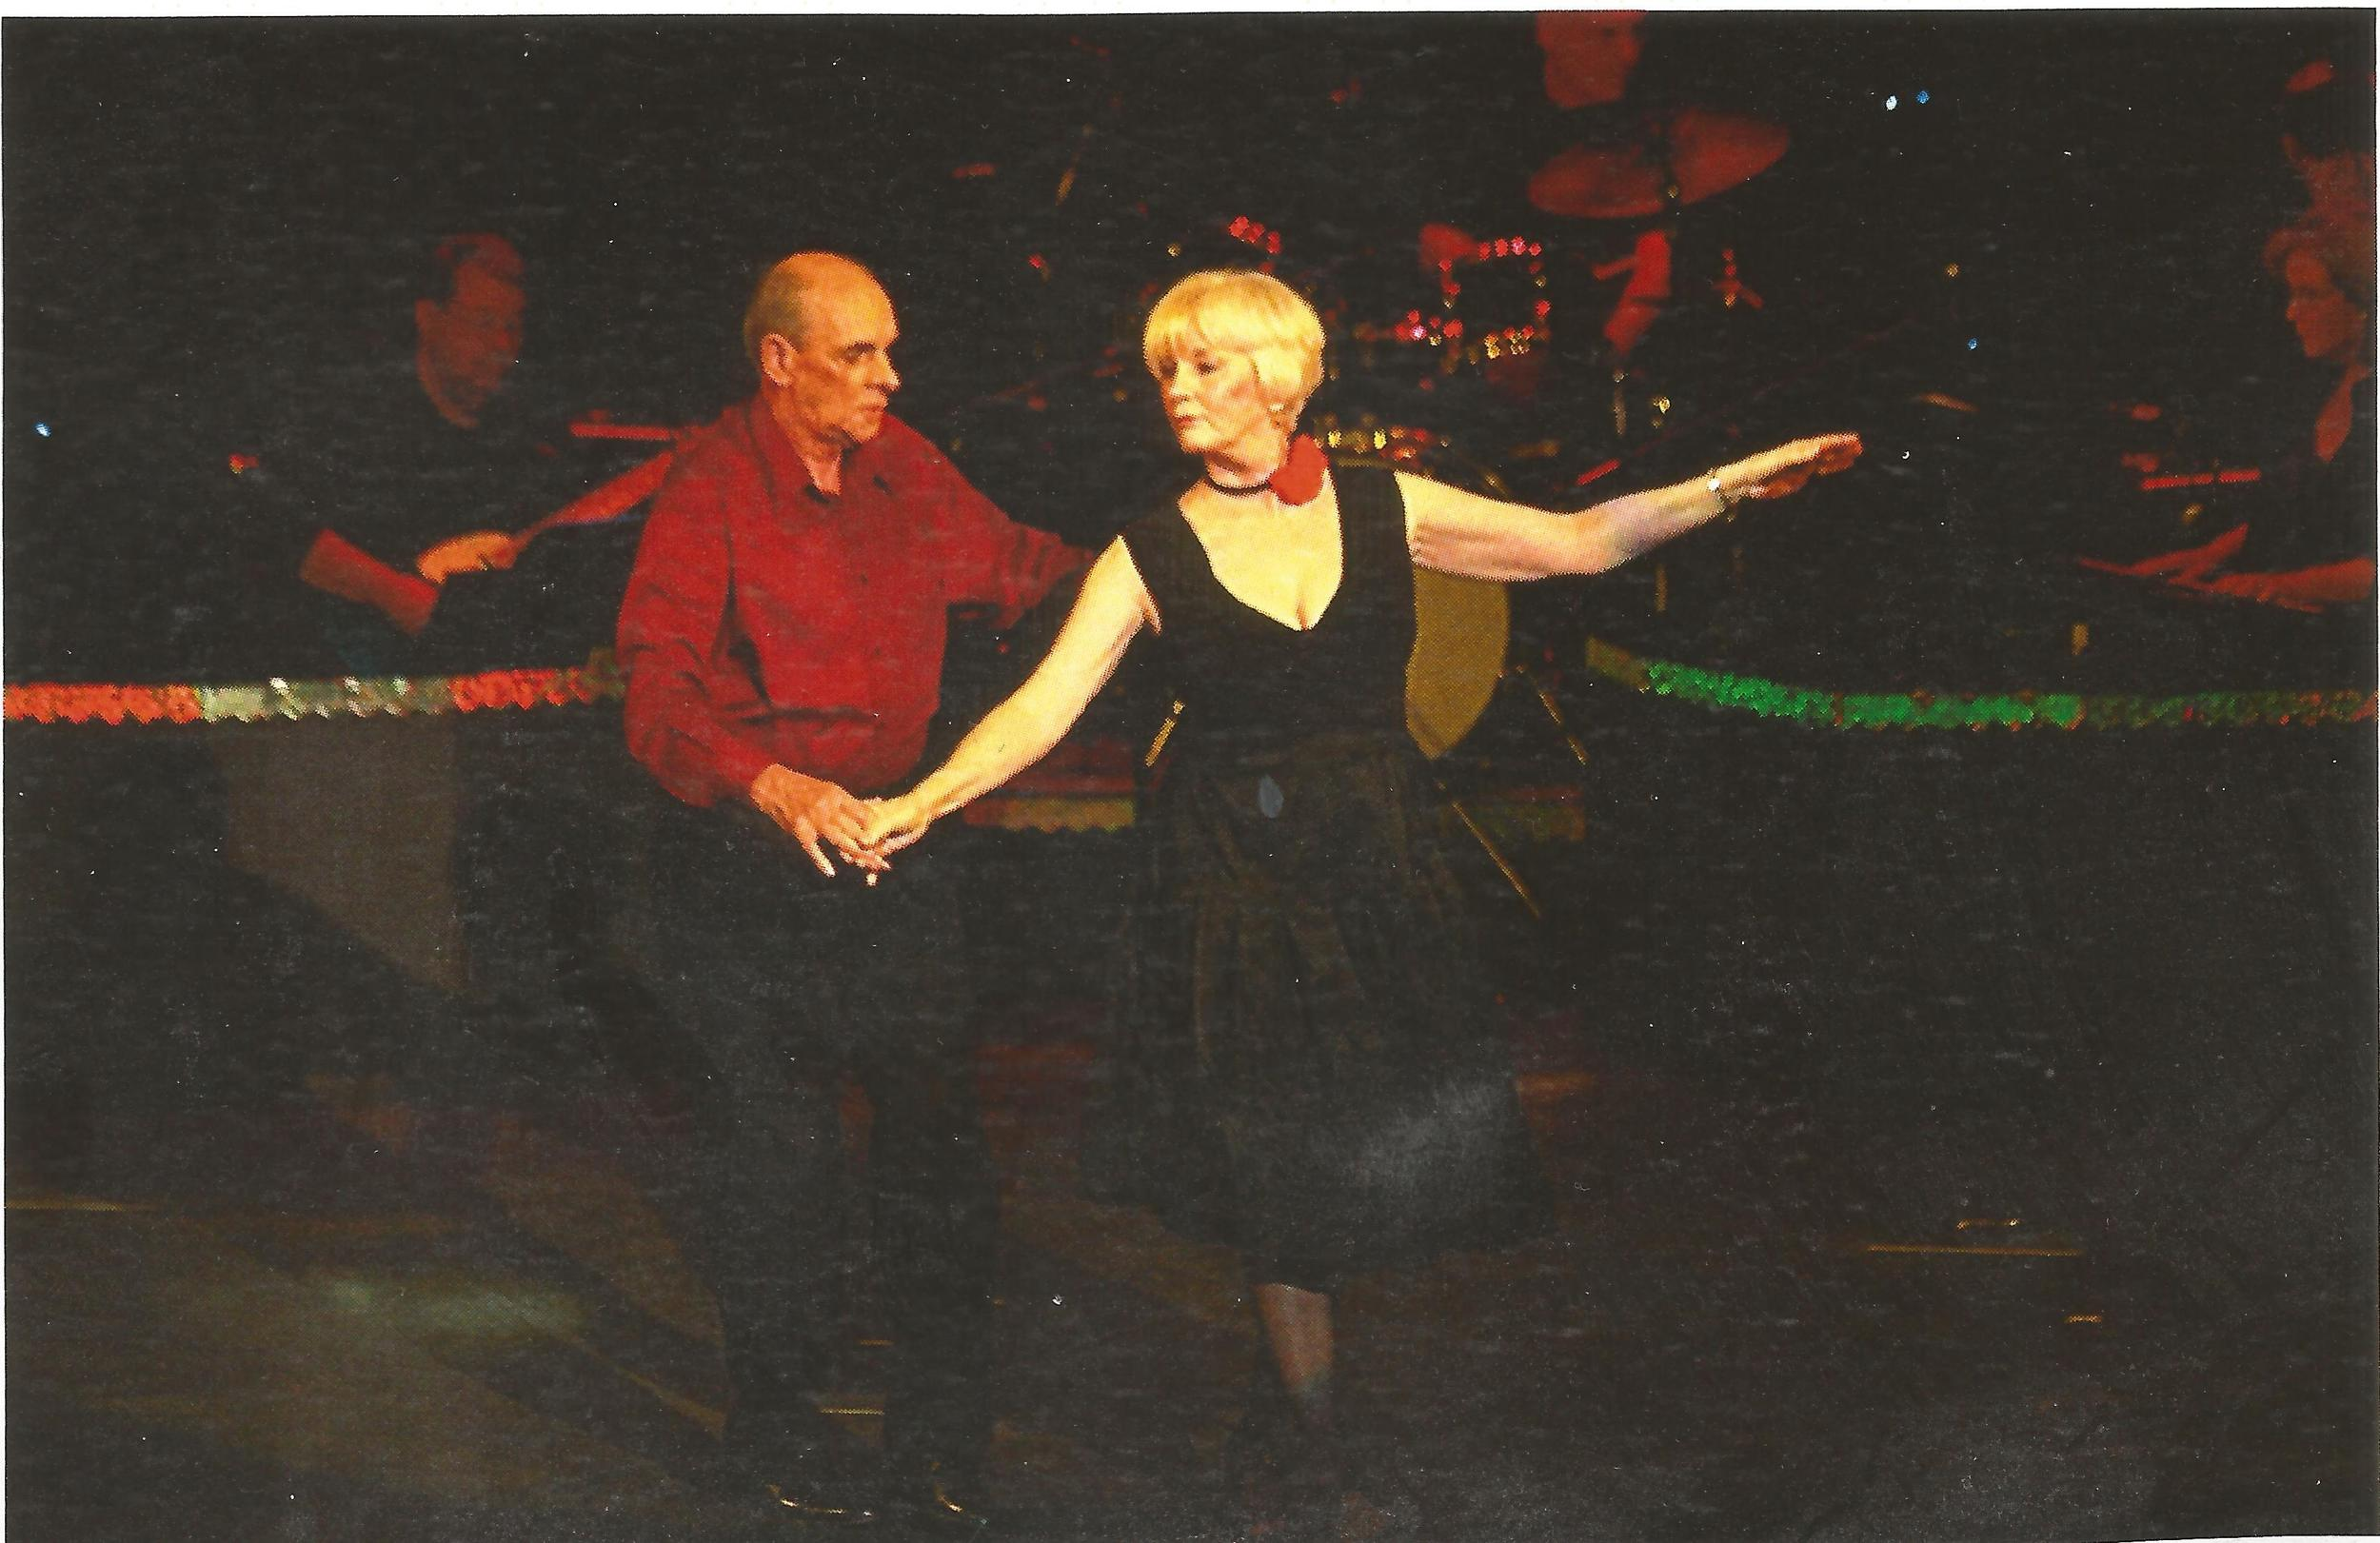 A client, David Mucklow, dances in a production at Pebble Creek. Photograph used with permission.